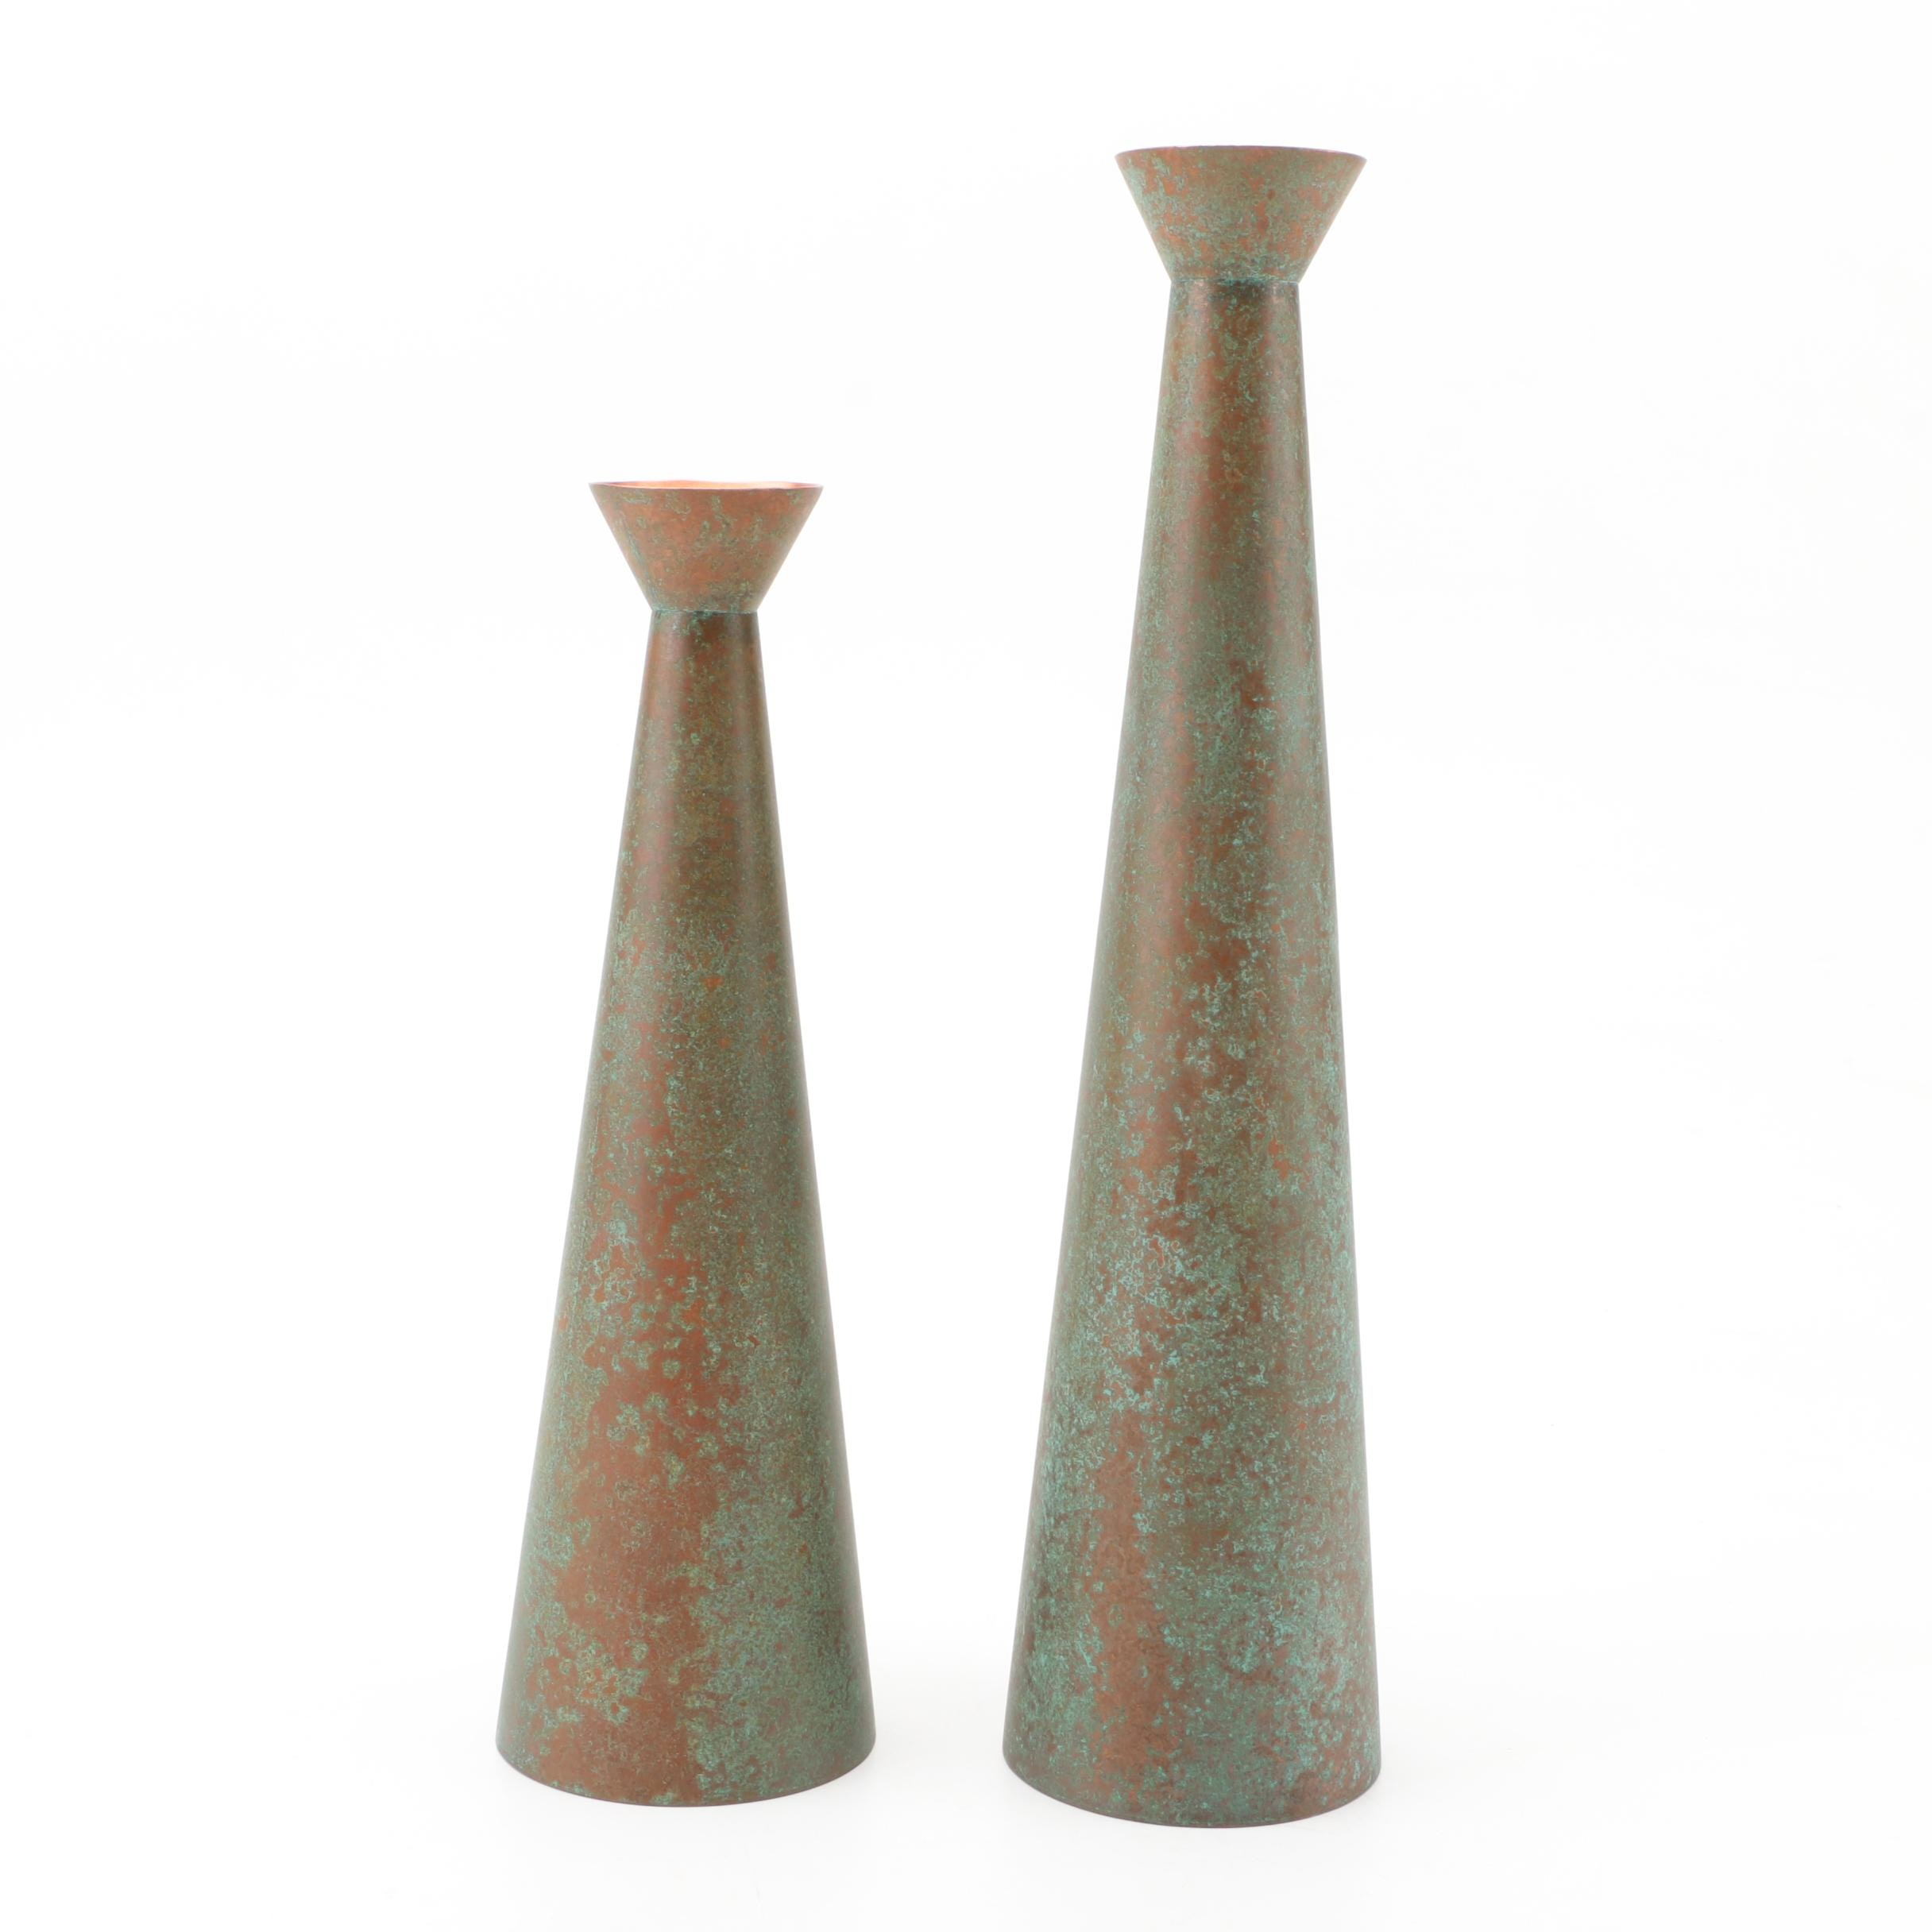 Oxidized Copper Vessels